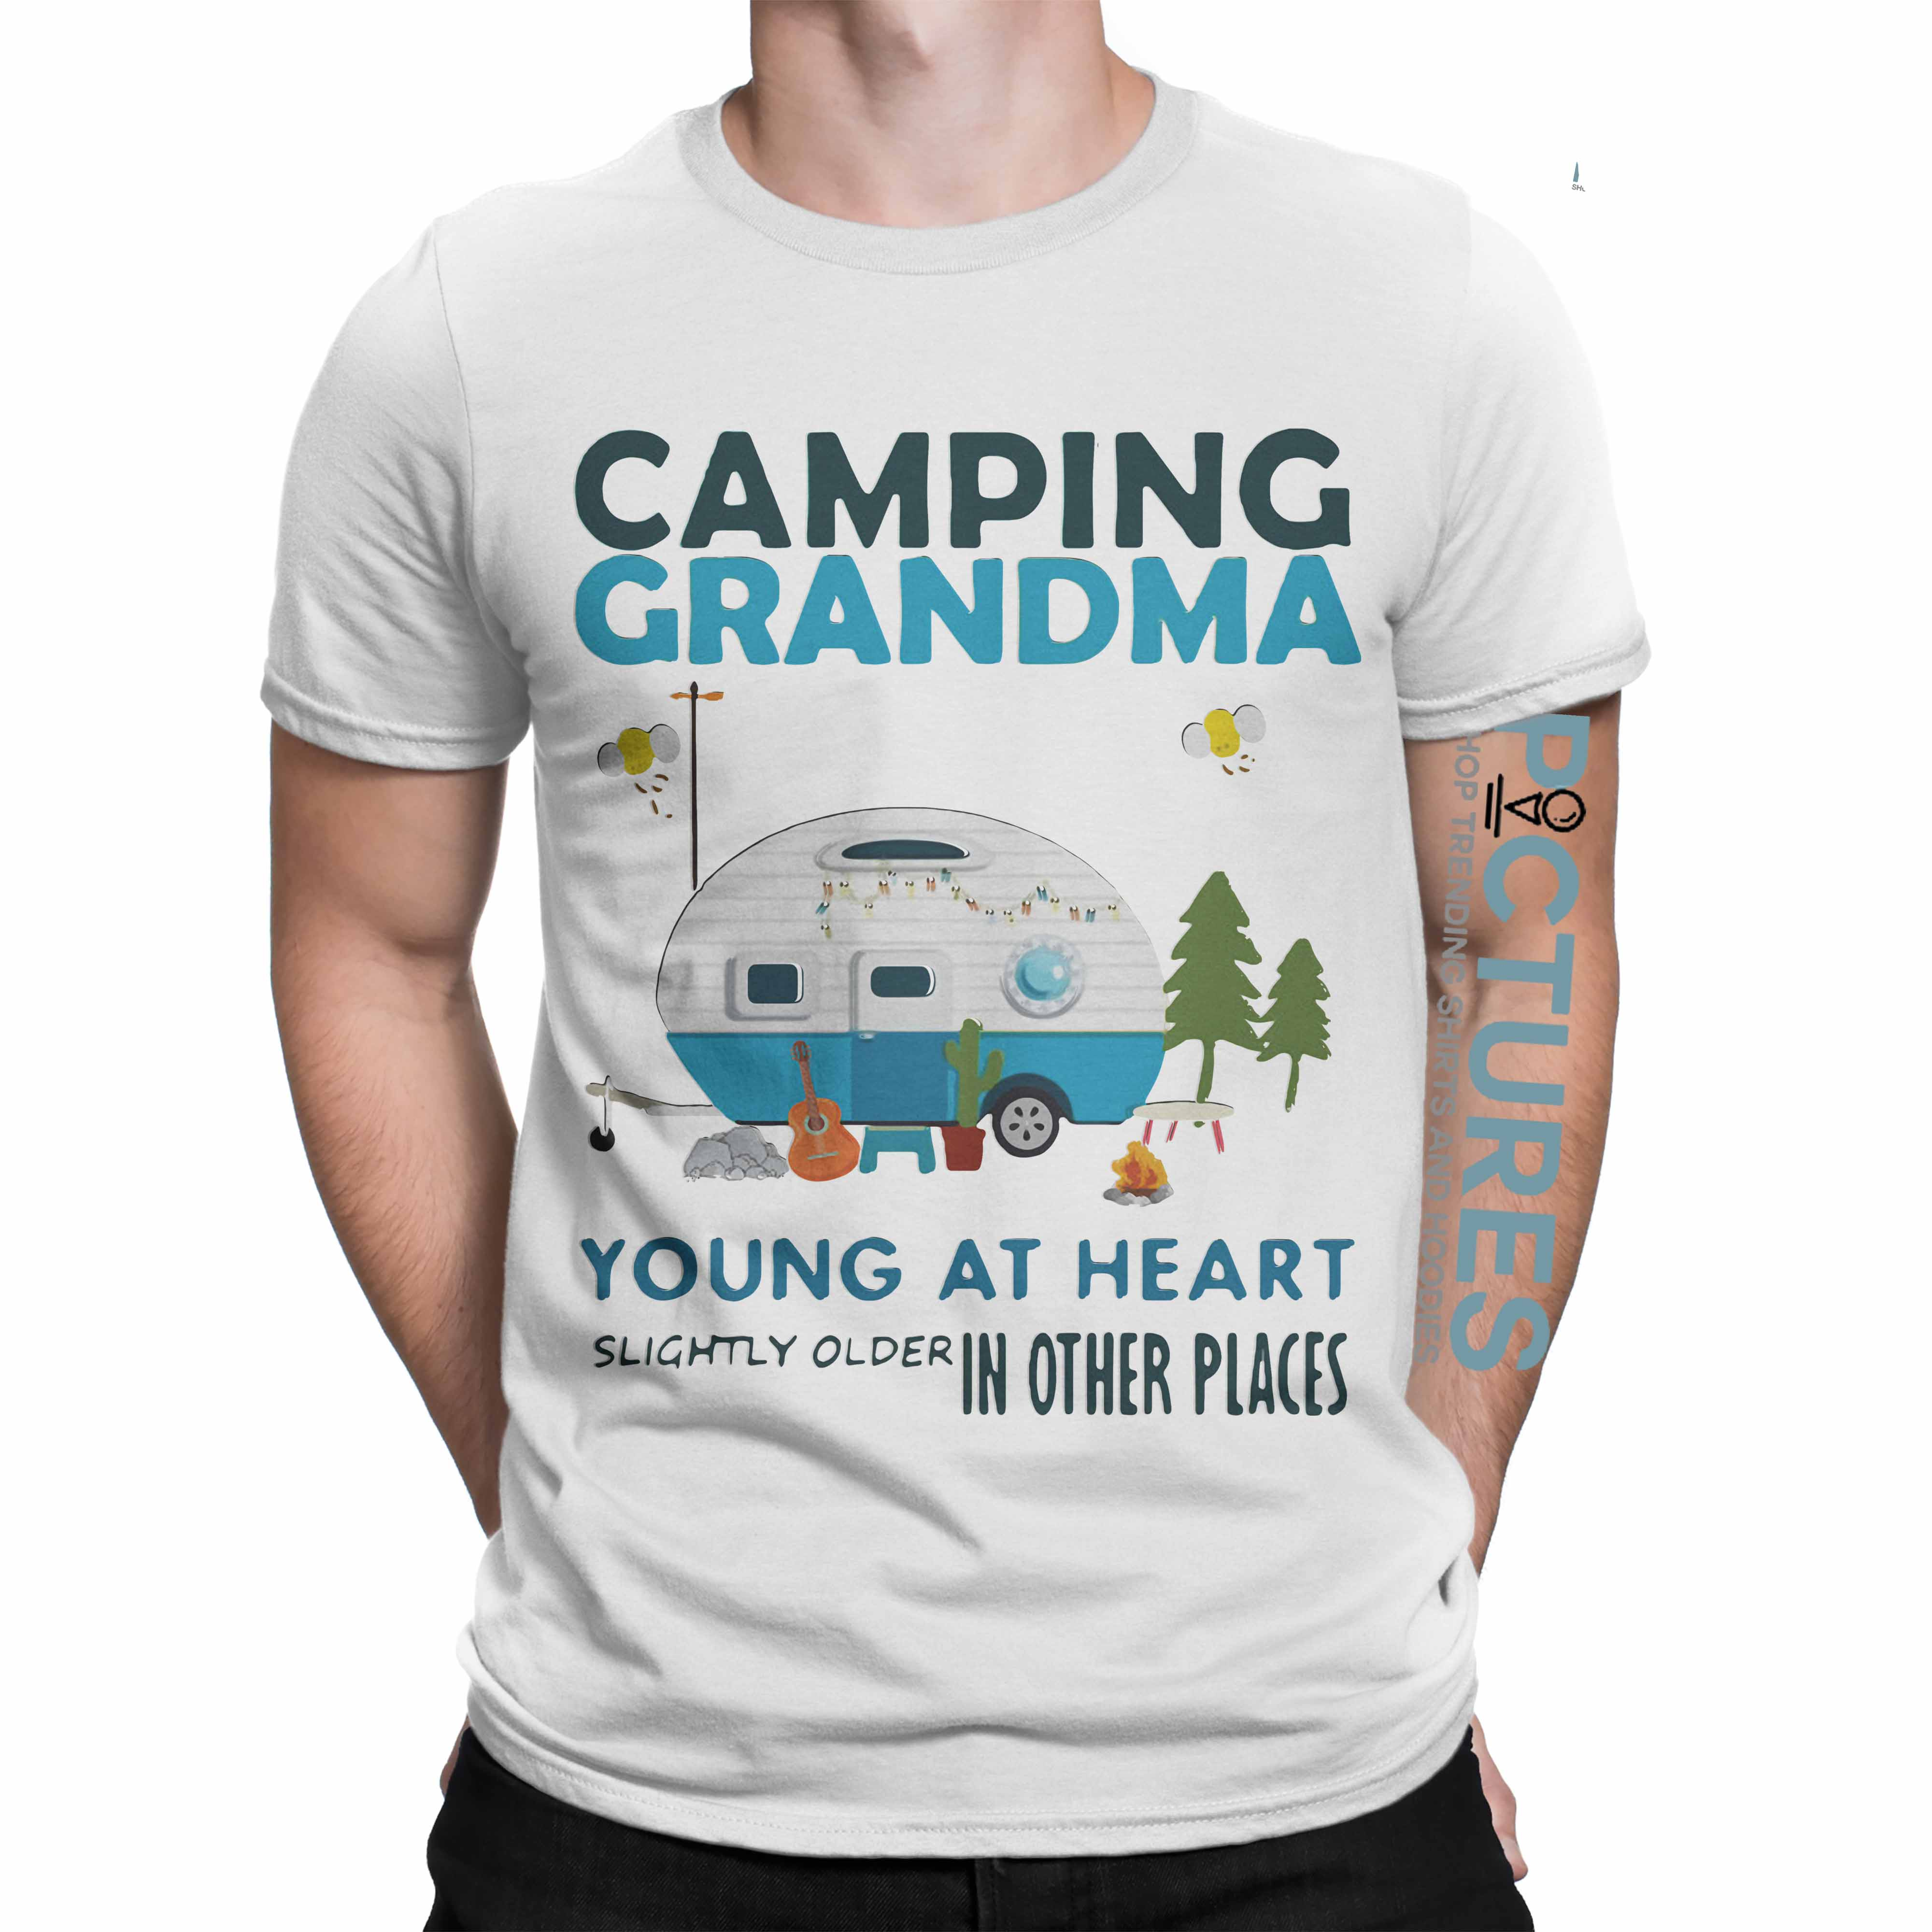 Camping Grandma young at heart slightly older other places shirt